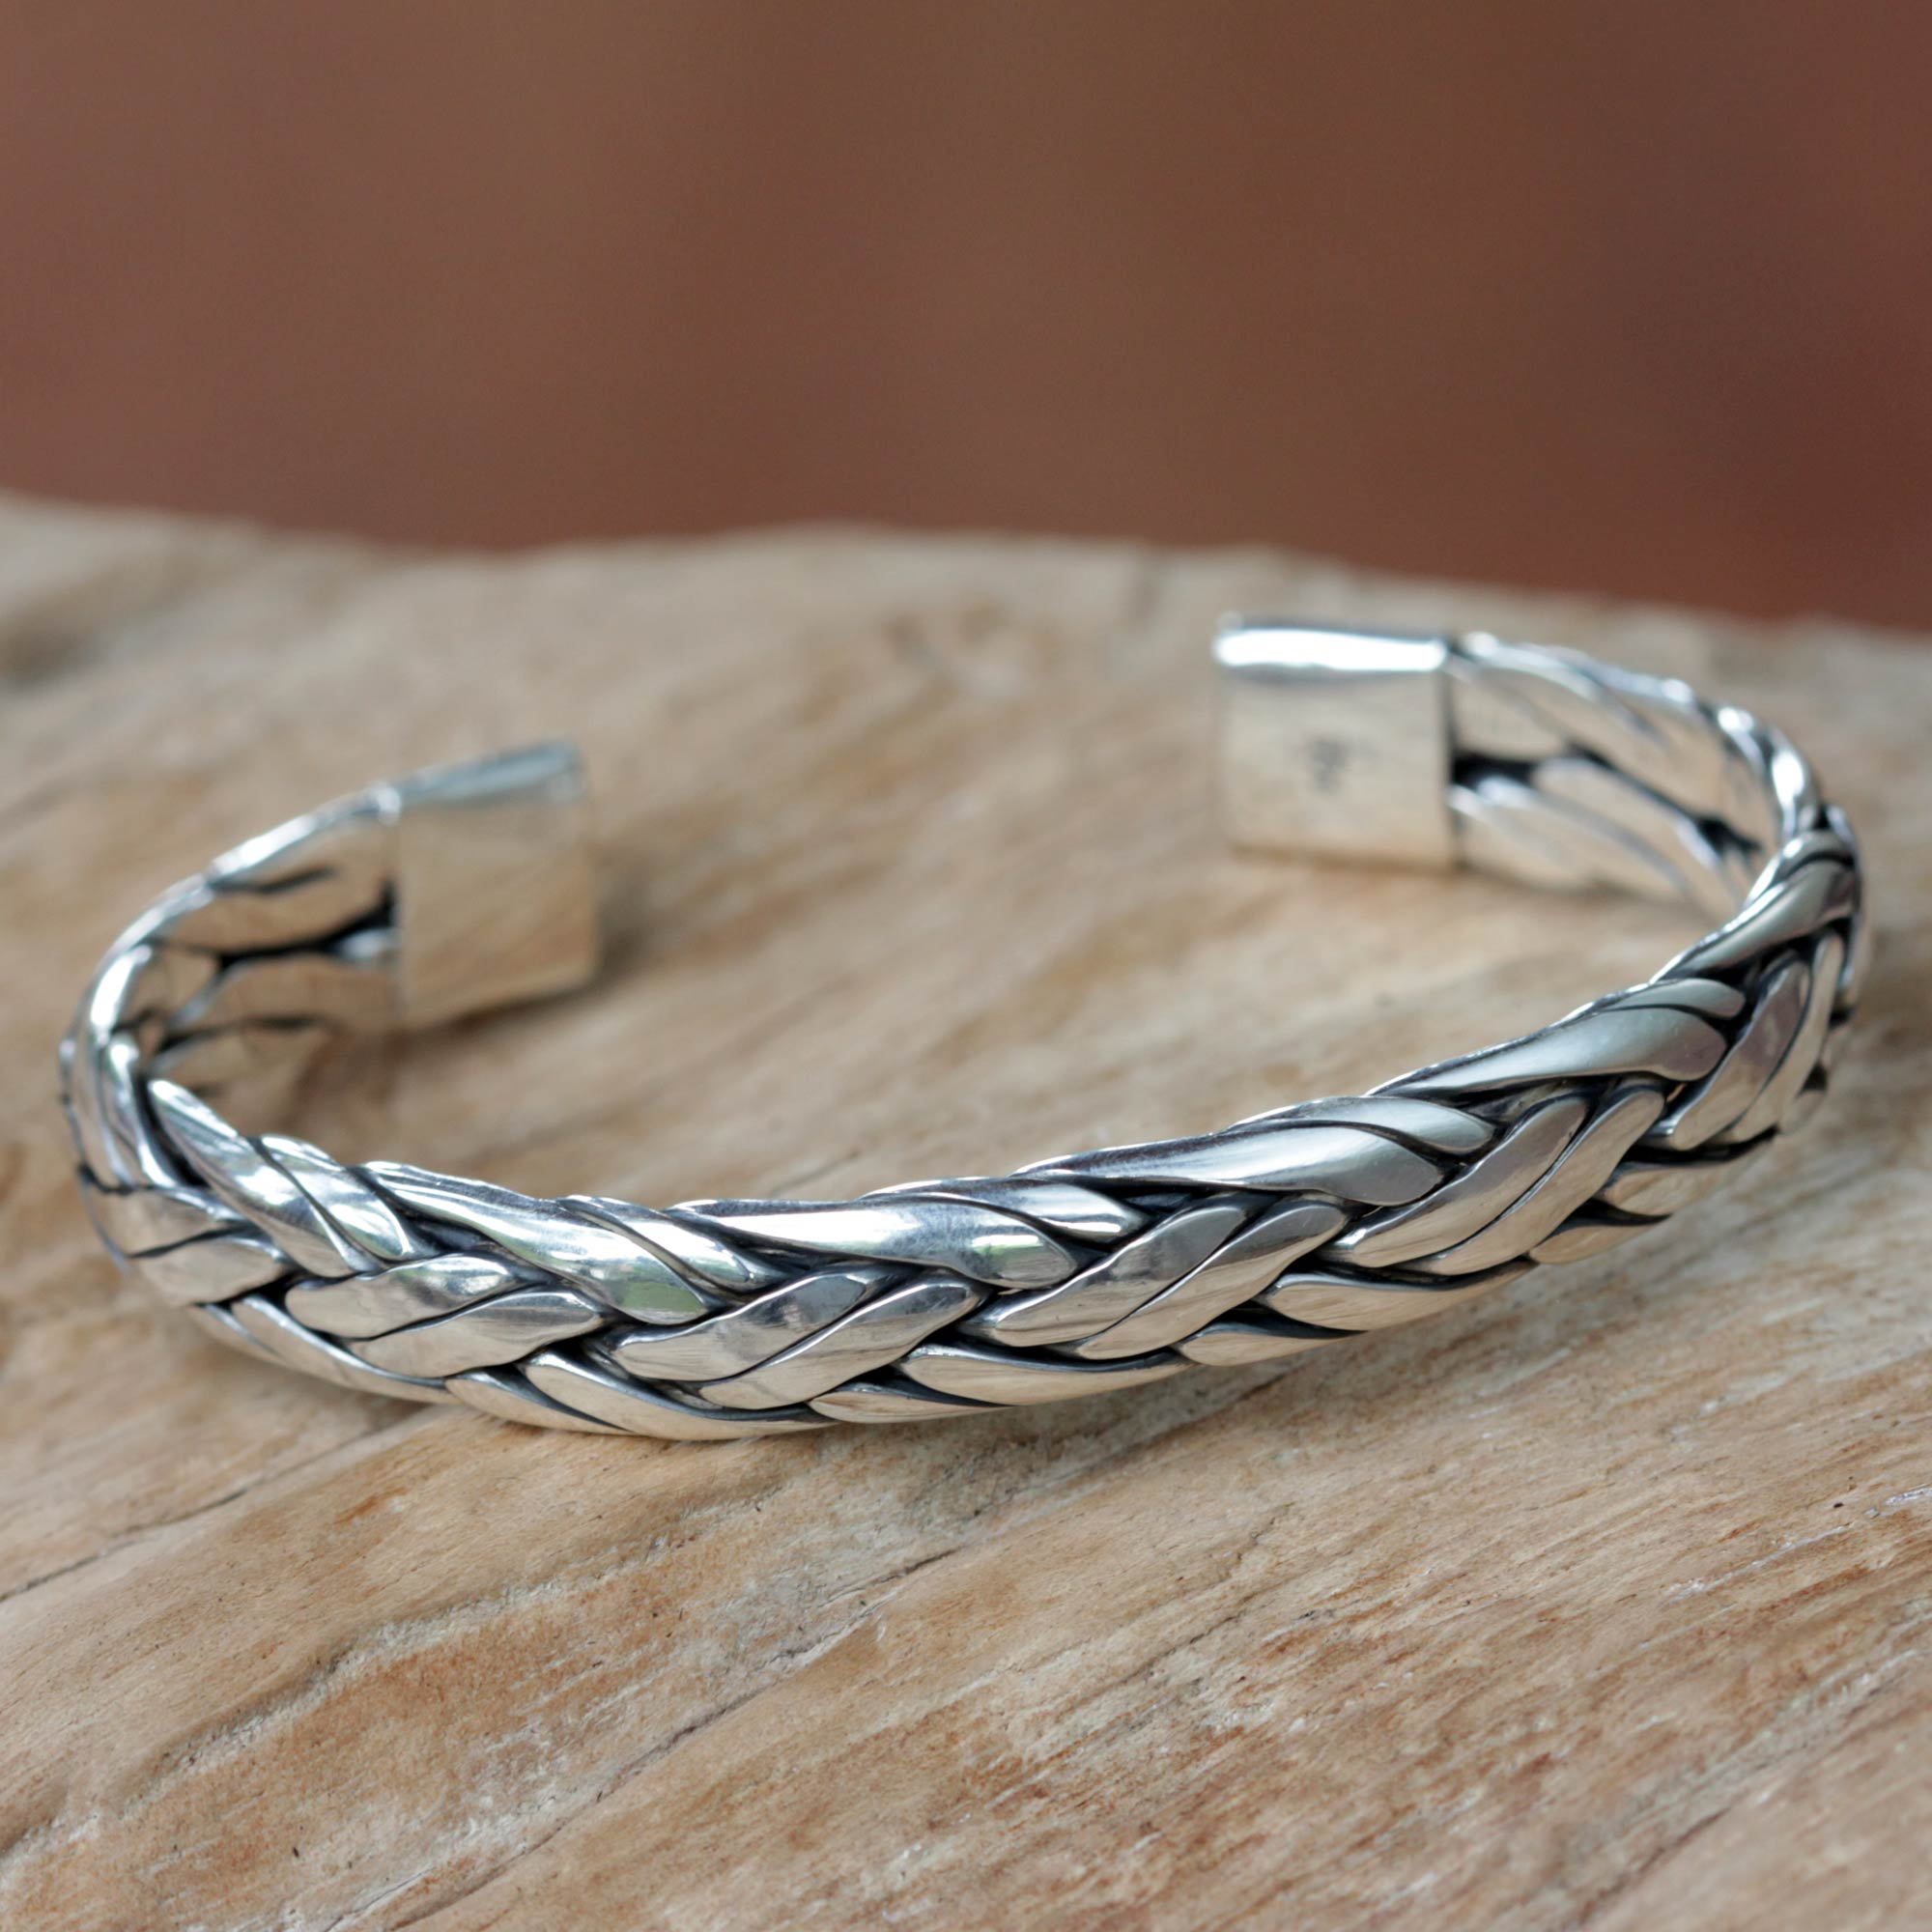 circle bangle tiny jewellery bracelet silver rod oliver bonas interlinking bracelets and small bangles